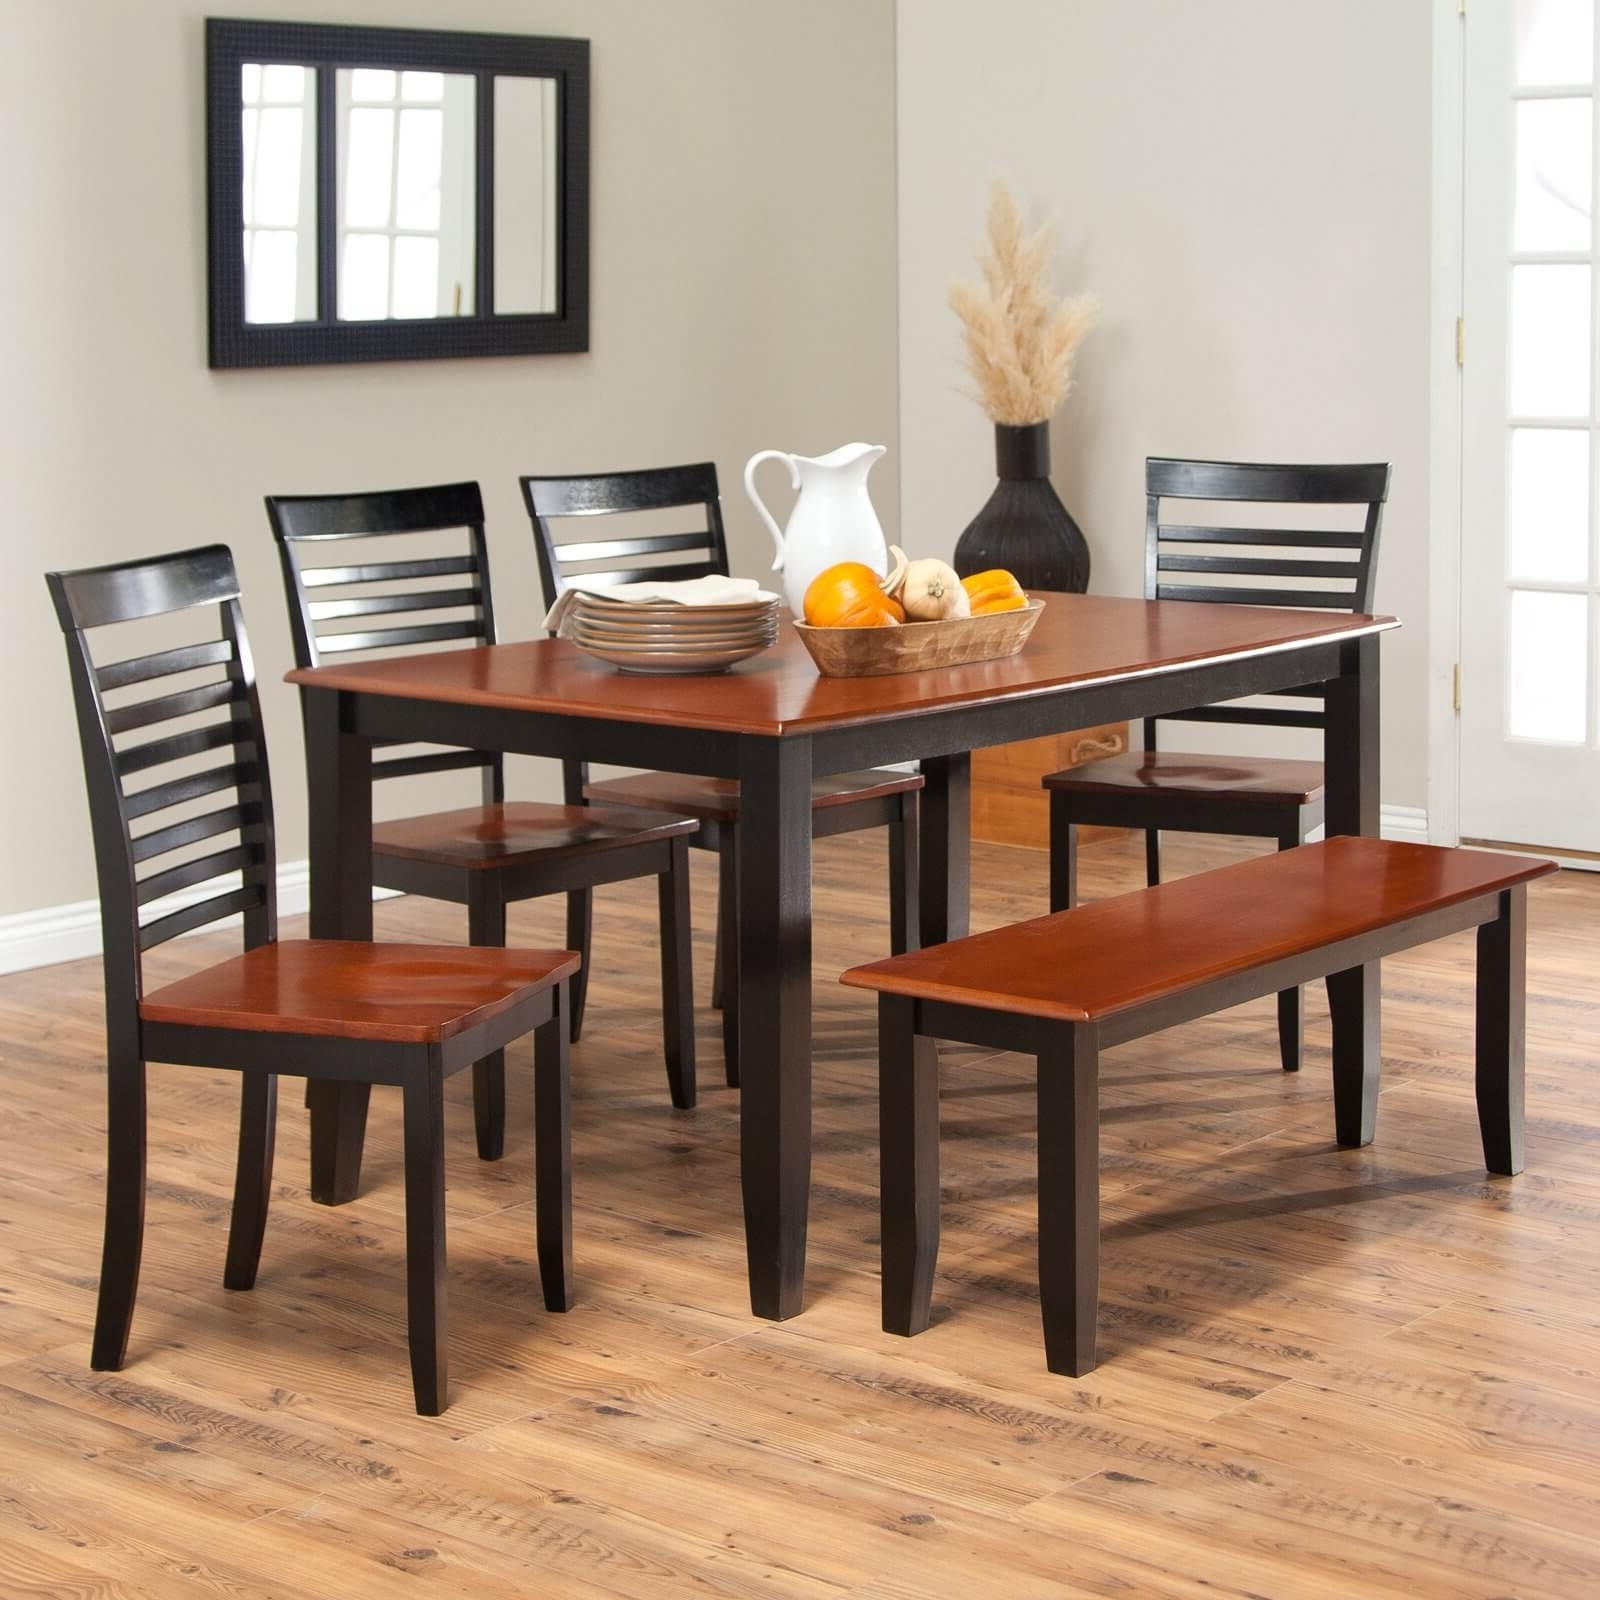 Dark Wood Dining Tables And Chairs Inside Most Popular 26 Dining Room Sets (Big And Small) With Bench Seating (2018) (View 17 of 25)